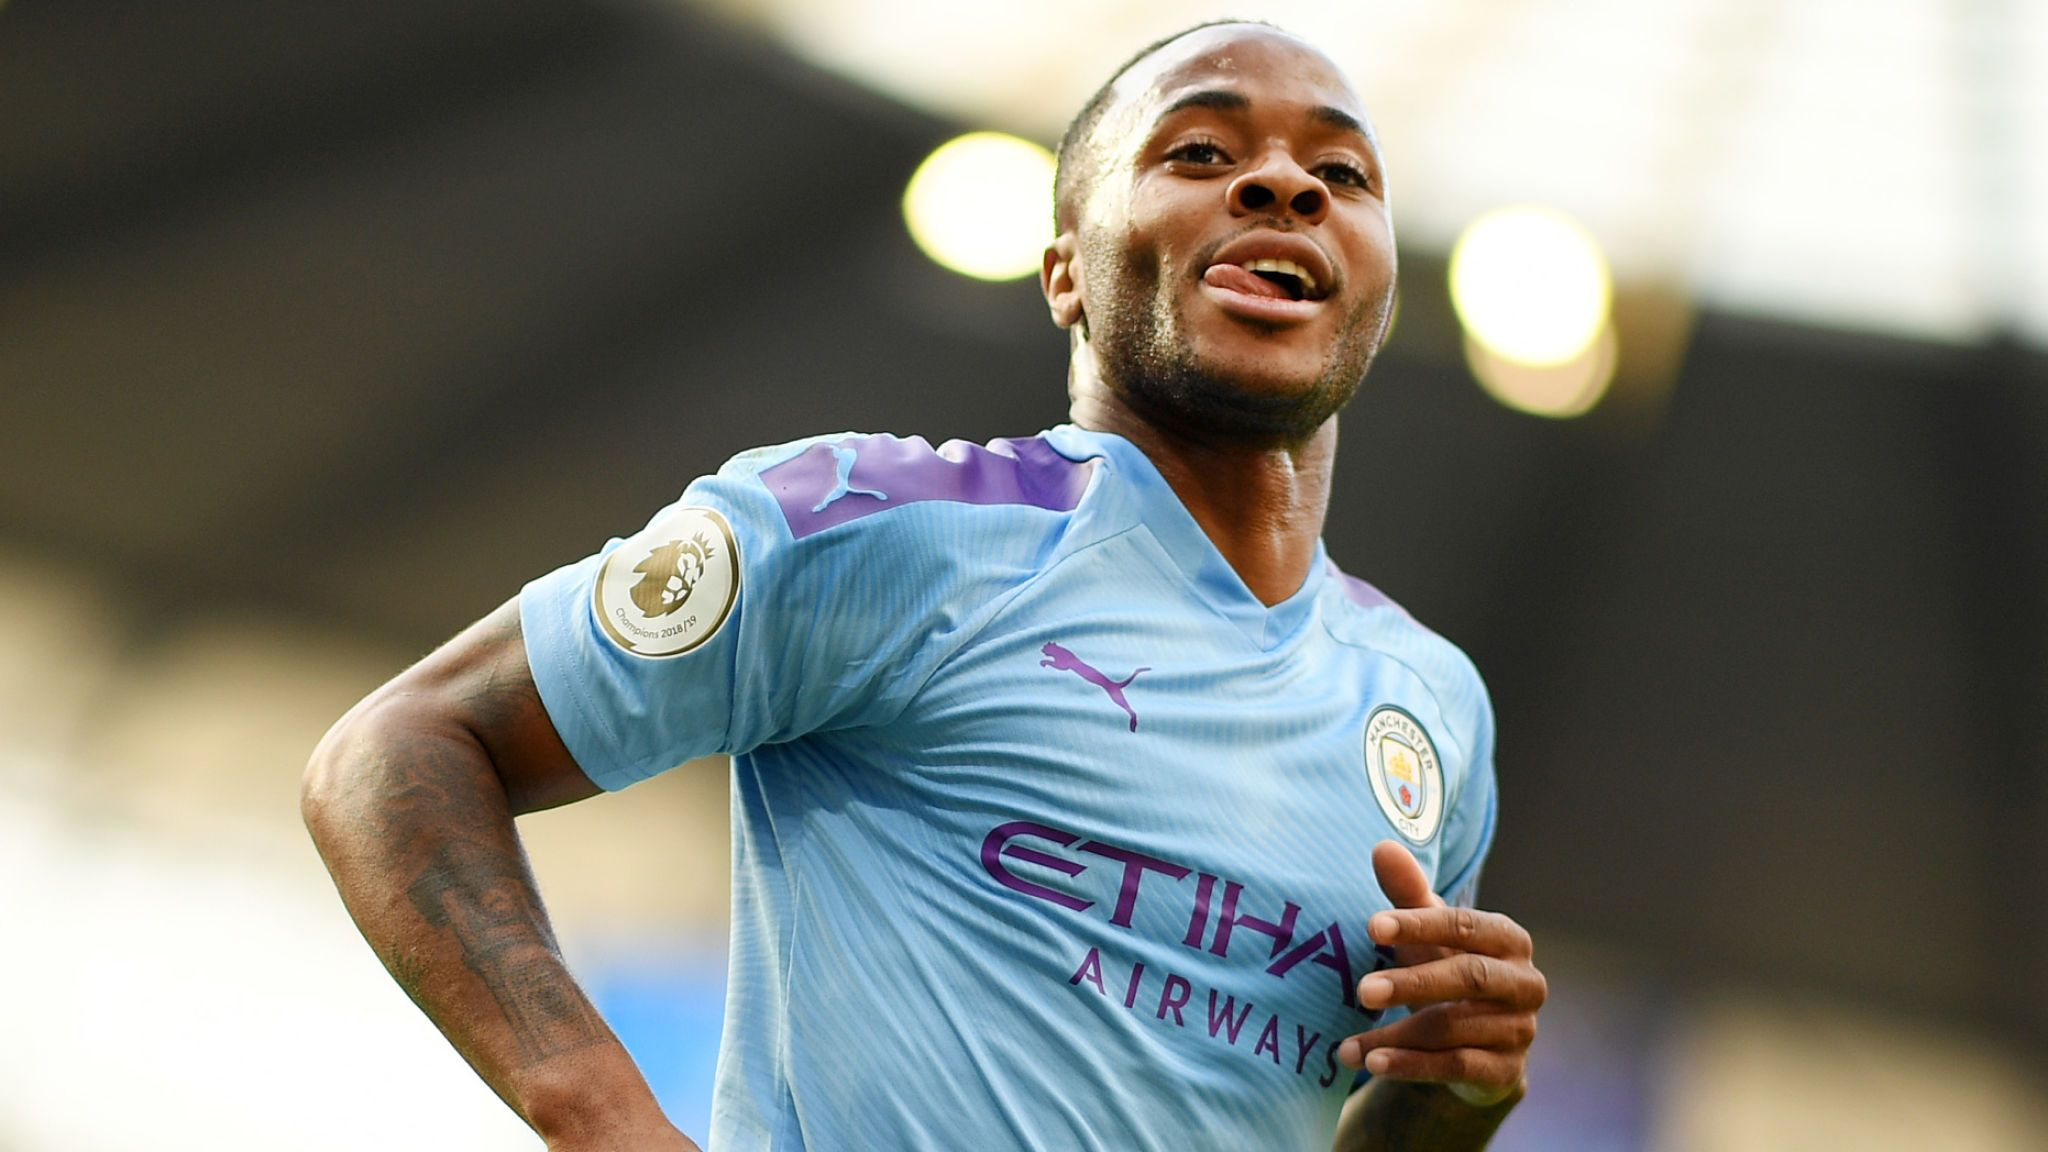 real will pay 180m for sterling - Bóng Đá